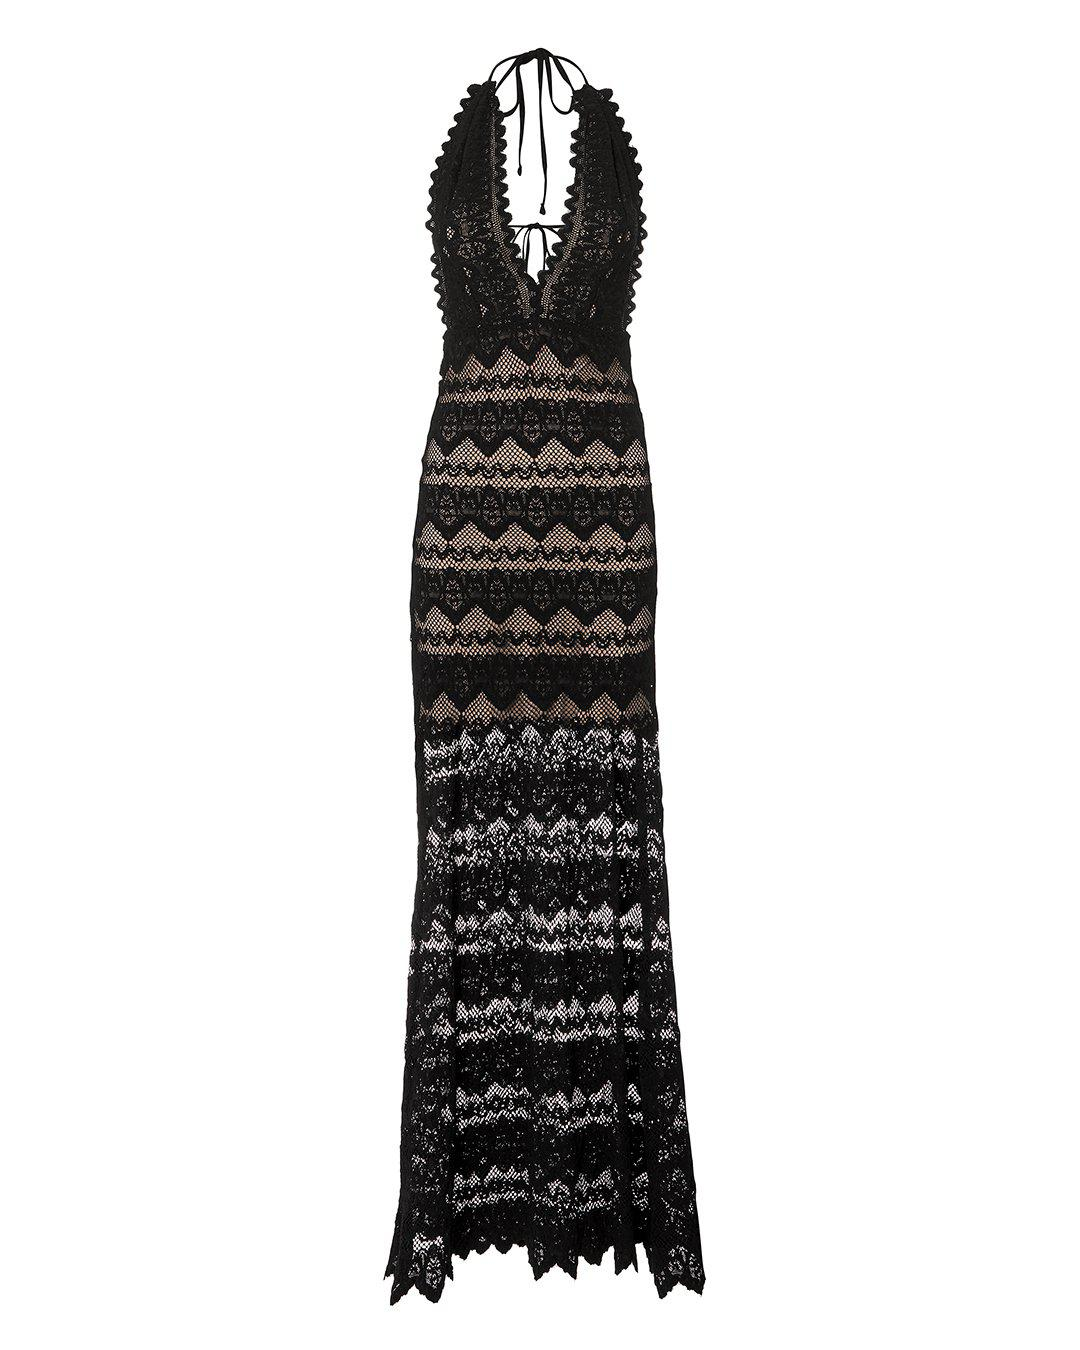 a76d8ad8116 Lyst - Nightcap Lima Lace Maxi Dress in Black